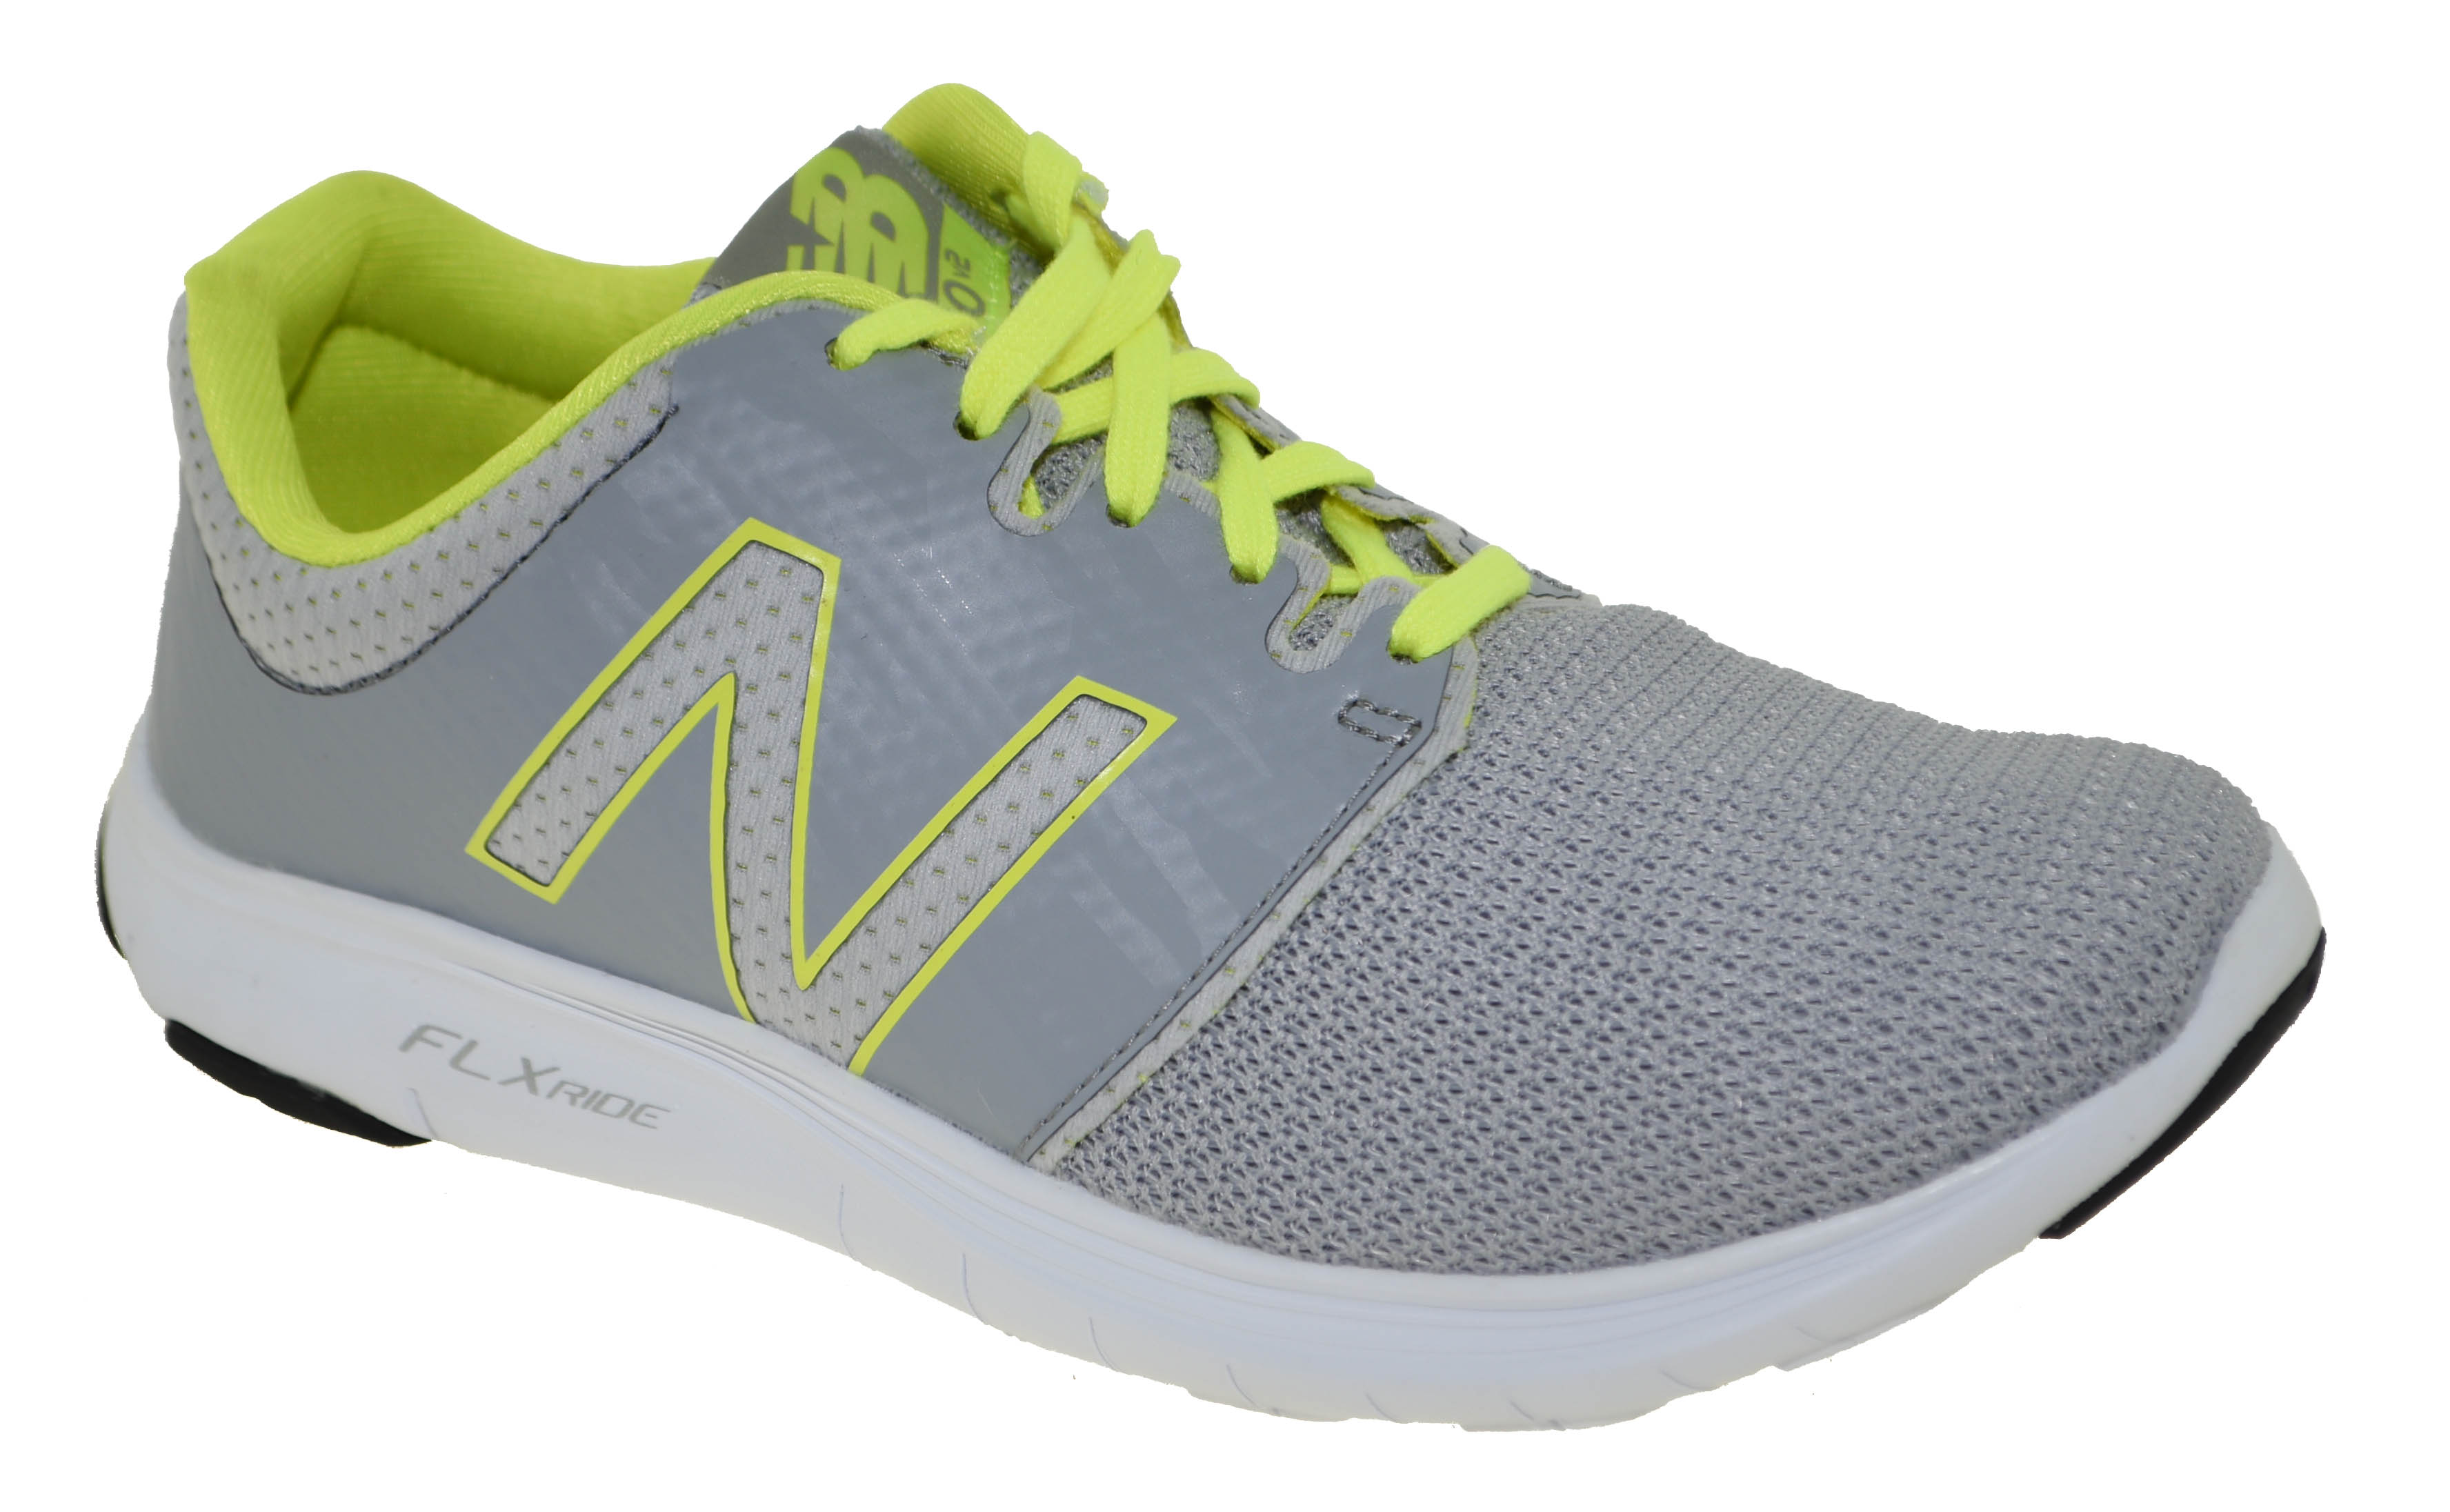 buy popular 76d6d 702cb Details about New Balance Women's 530 v2 Running Shoe Style W530LY2